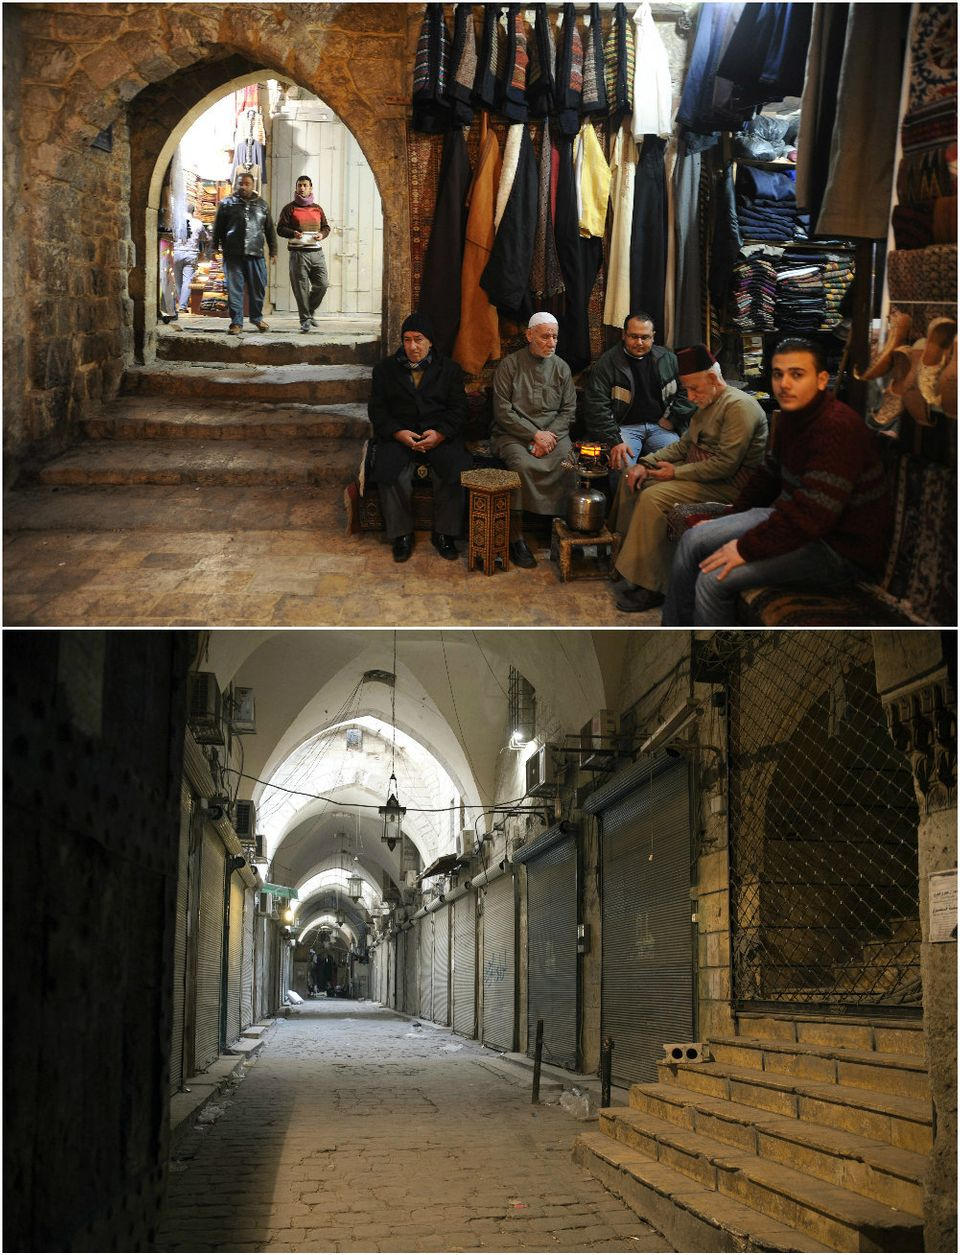 The once bustling souk now lies deserted after traders fled the